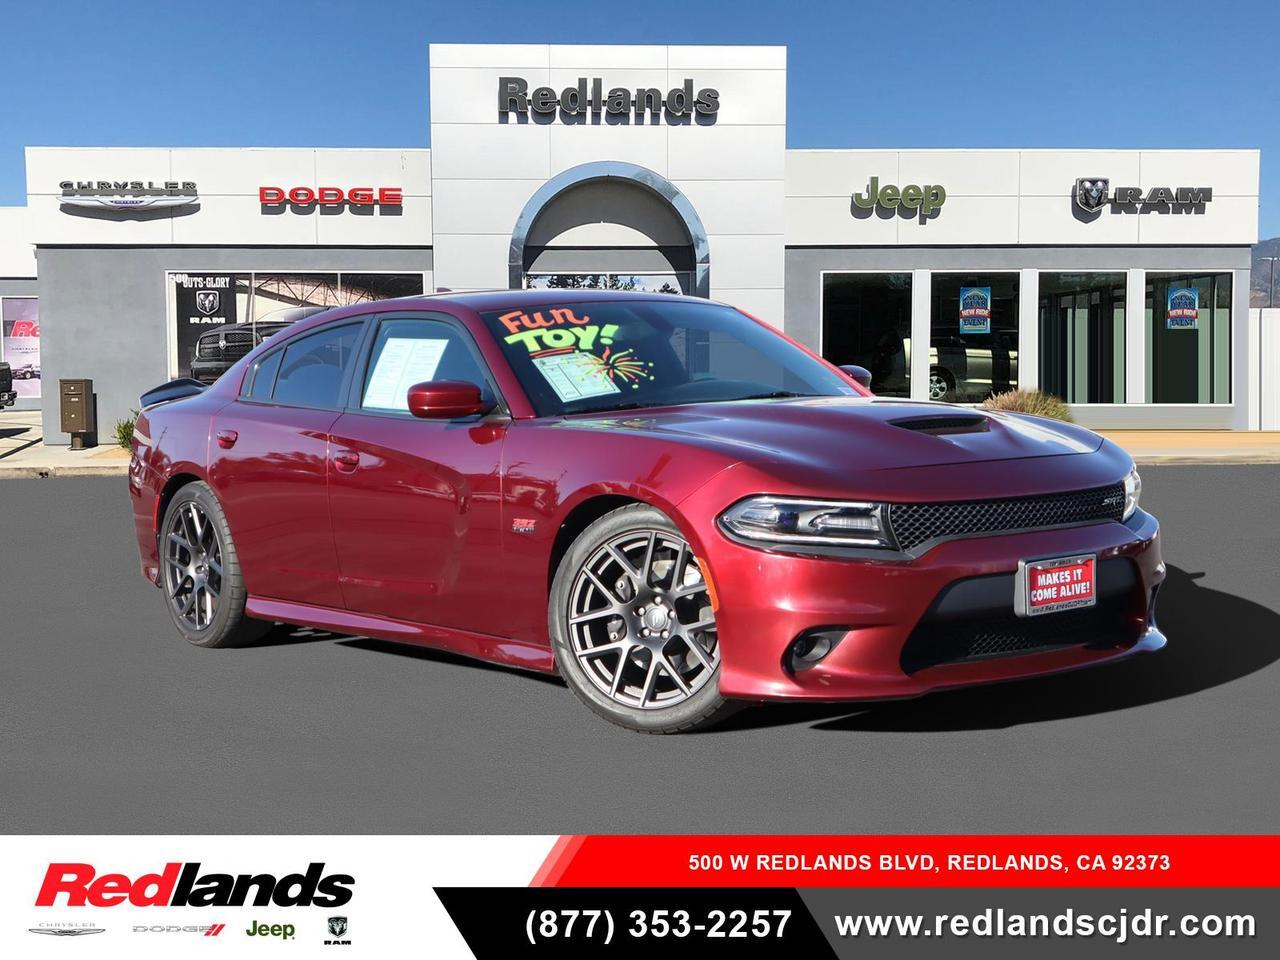 2018 Dodge Charger R/T Scat Pack Redlands CA